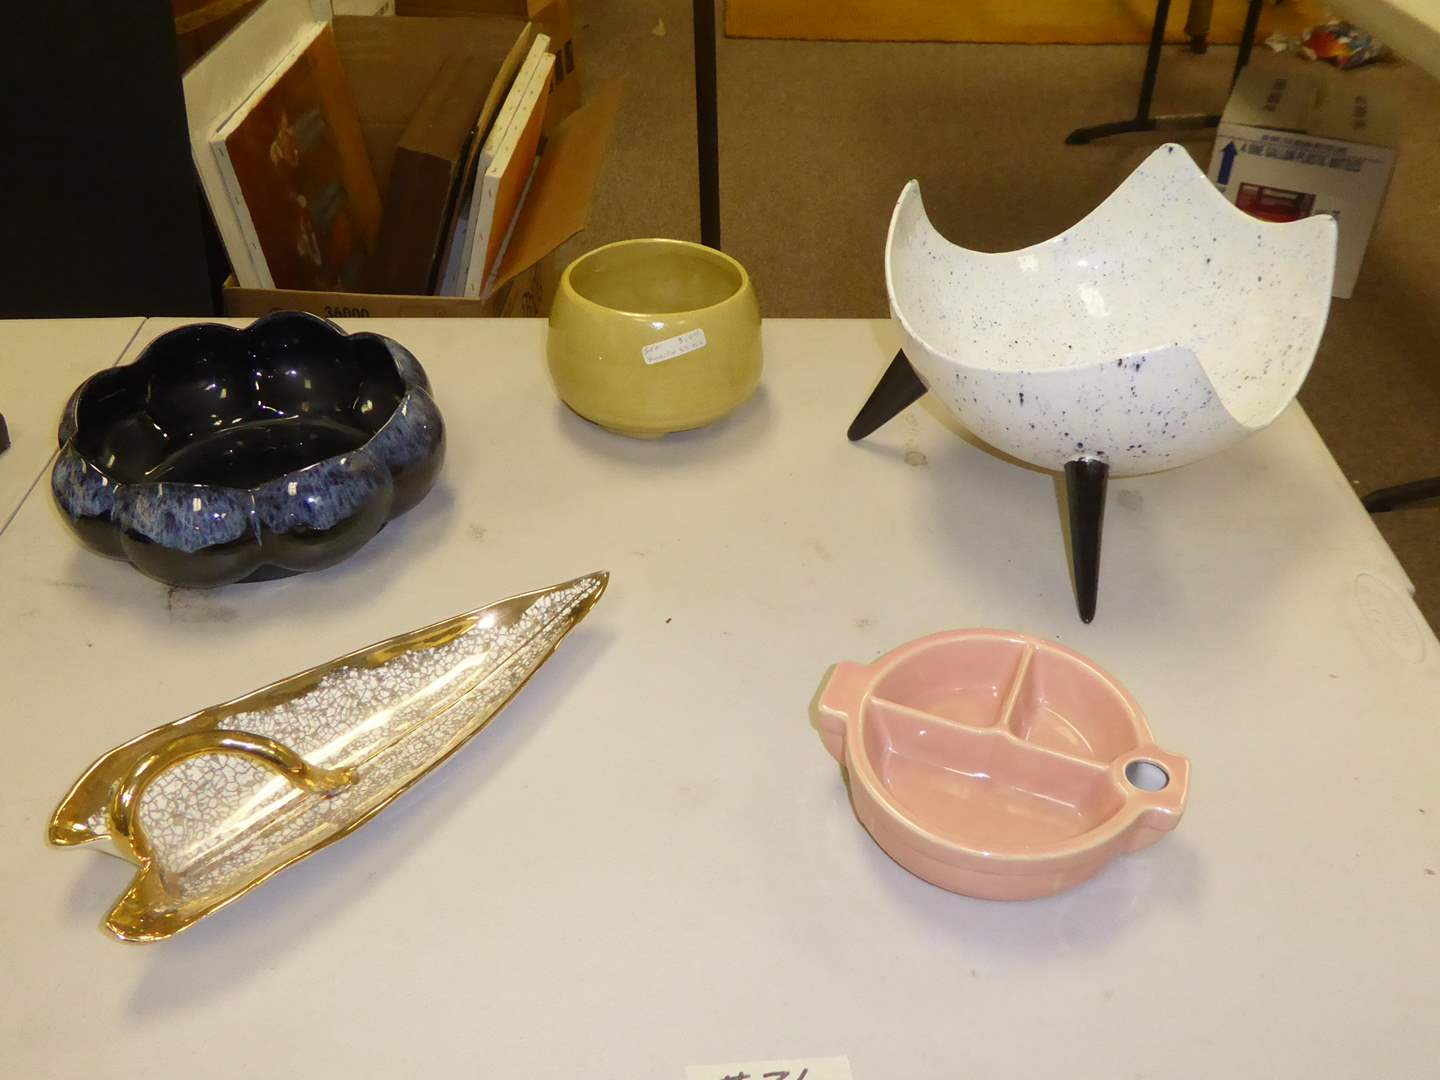 Lot # 26 - Speckled Atomic Pedestal Bowl & Other Mid Century Pottery  (main image)